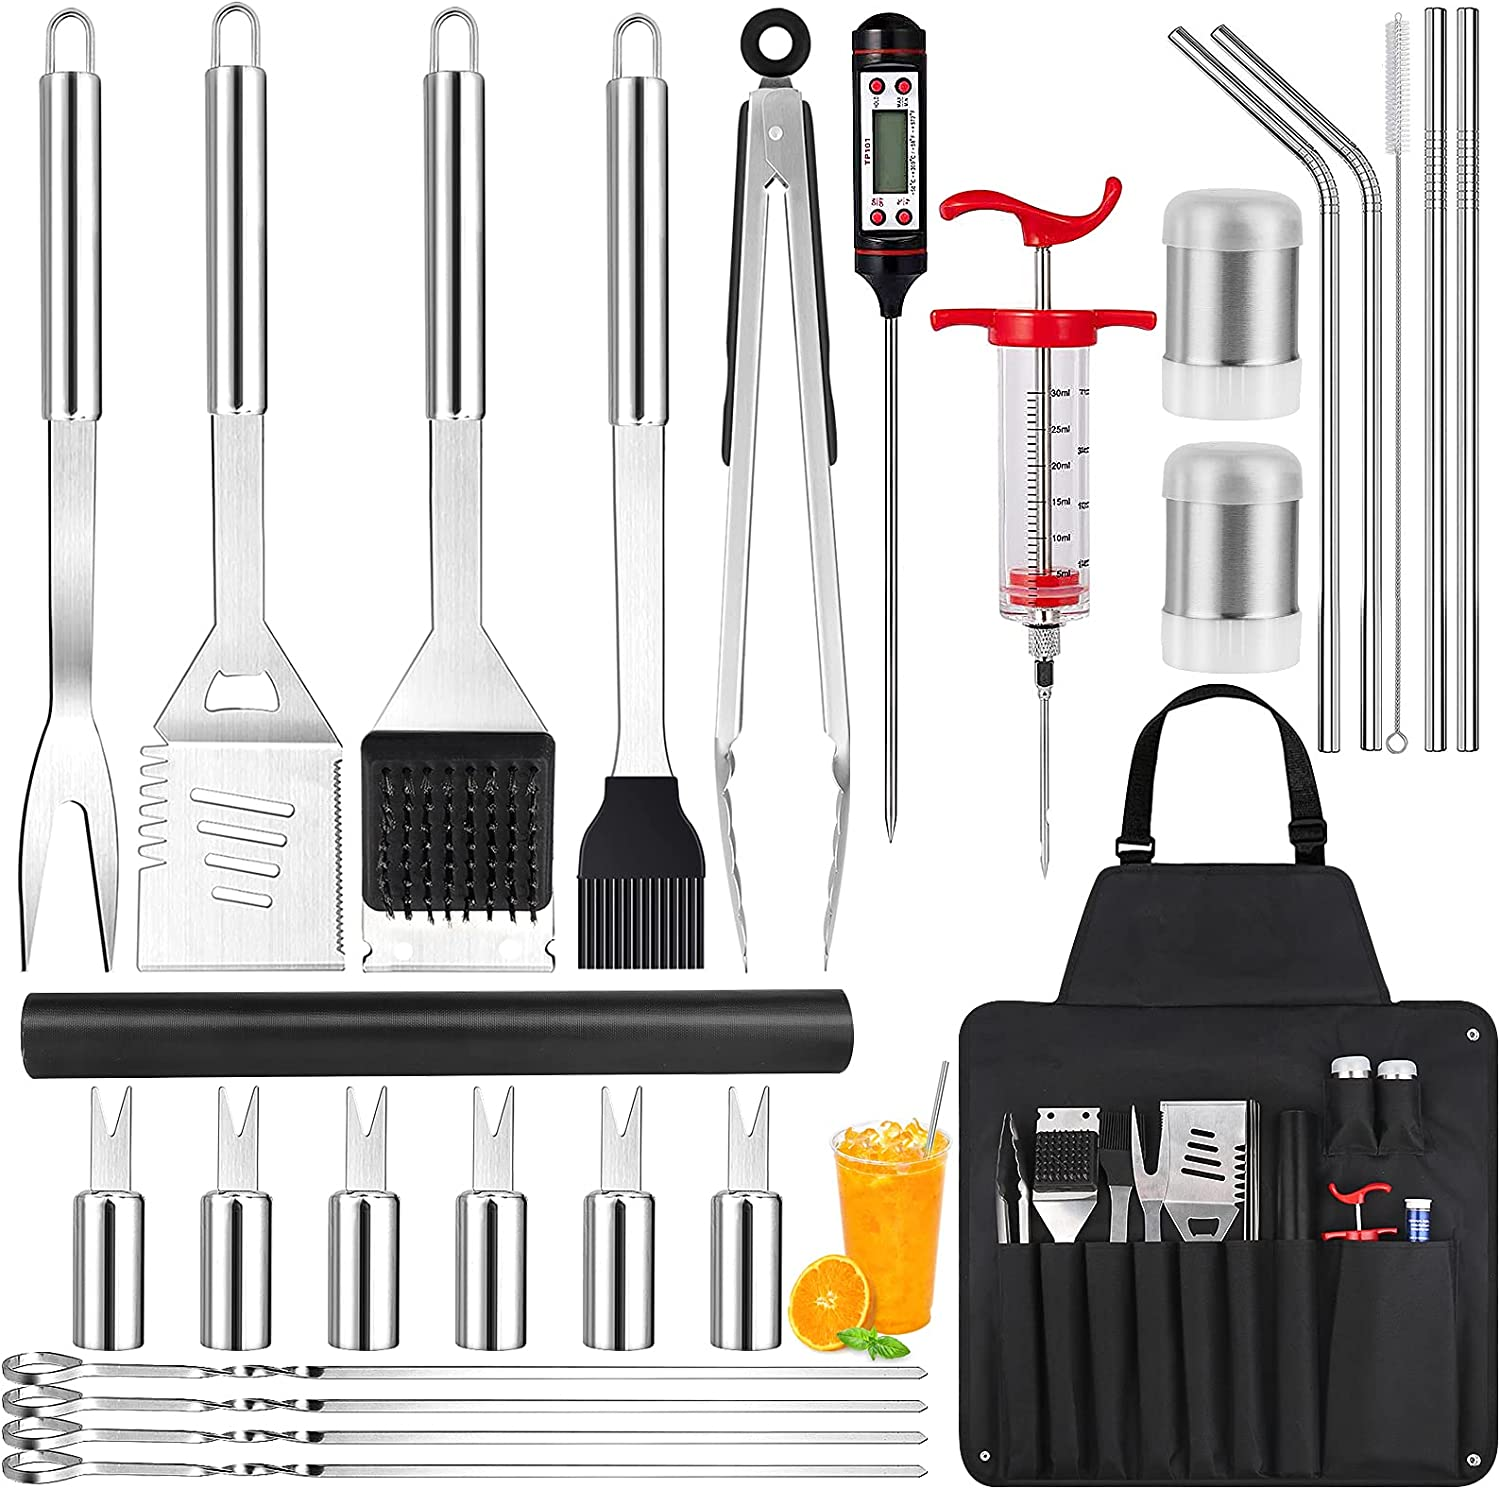 Cleansecr BBQ 26-Pieces Grill Tools Kit  $12.00 Coupon